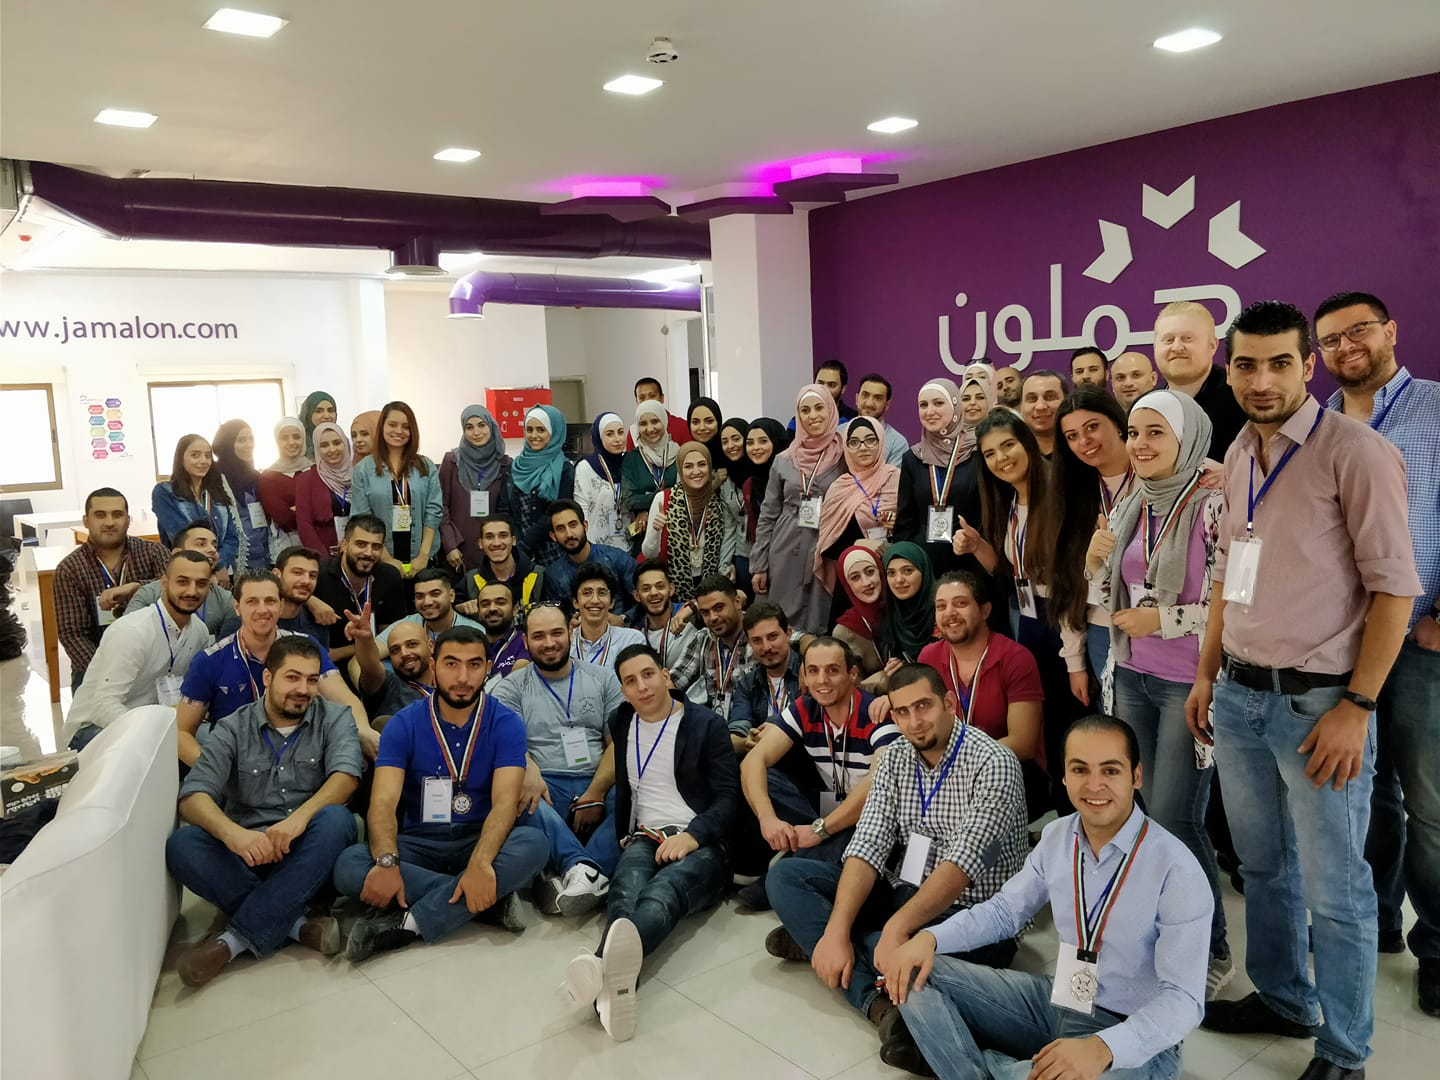 Jamalon secures over $10 million in its Series B Funding Round